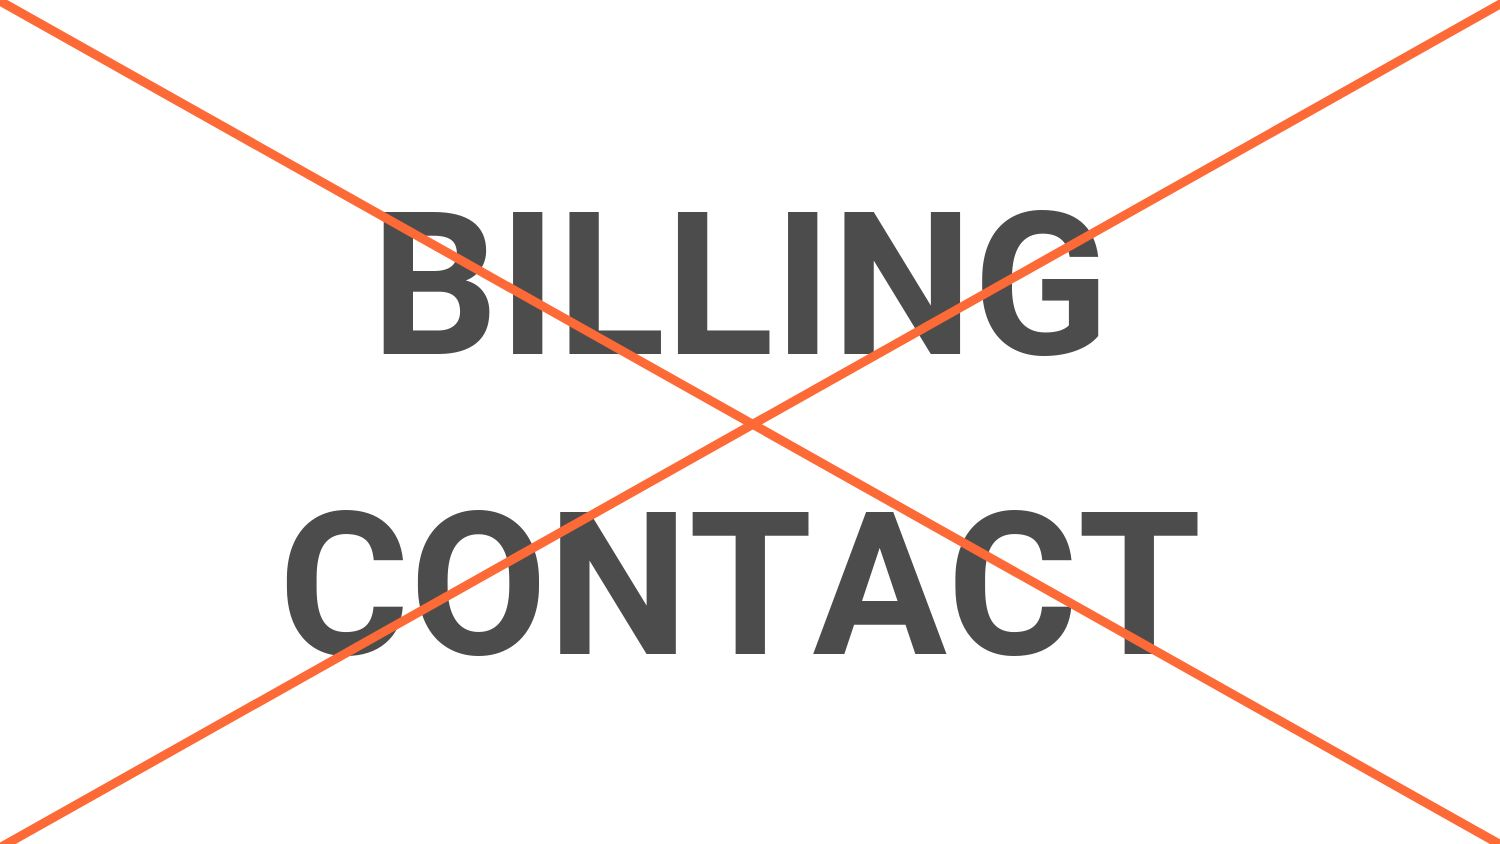 Changes to .lv domain name billing contacts